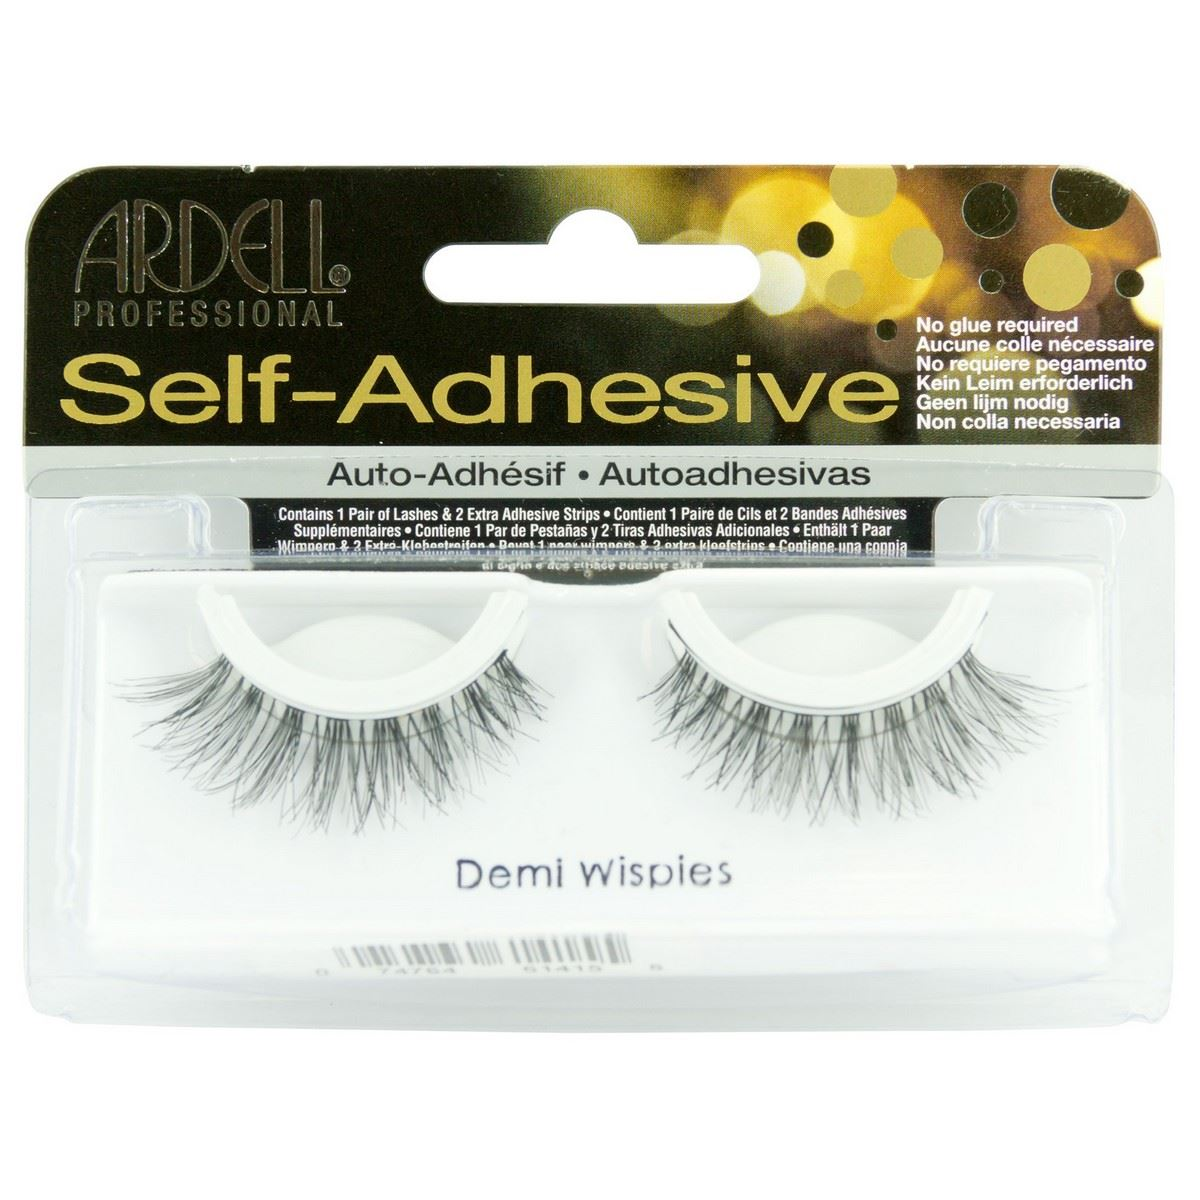 aa05e3b0829 Ardell Self-Adhesive Demi Wispies - Premium Quality Fake Lashes ...